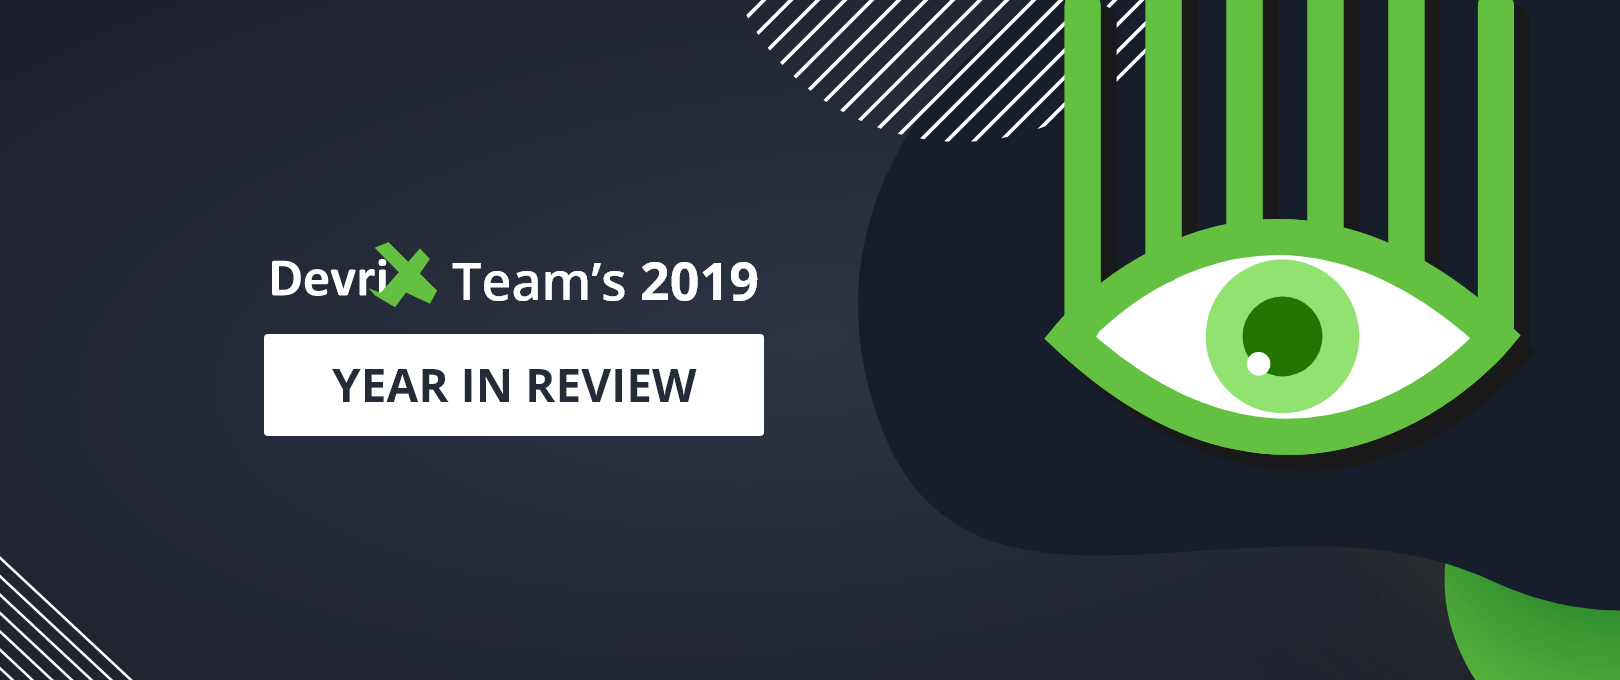 DevriX Team's 2019 Year in Review